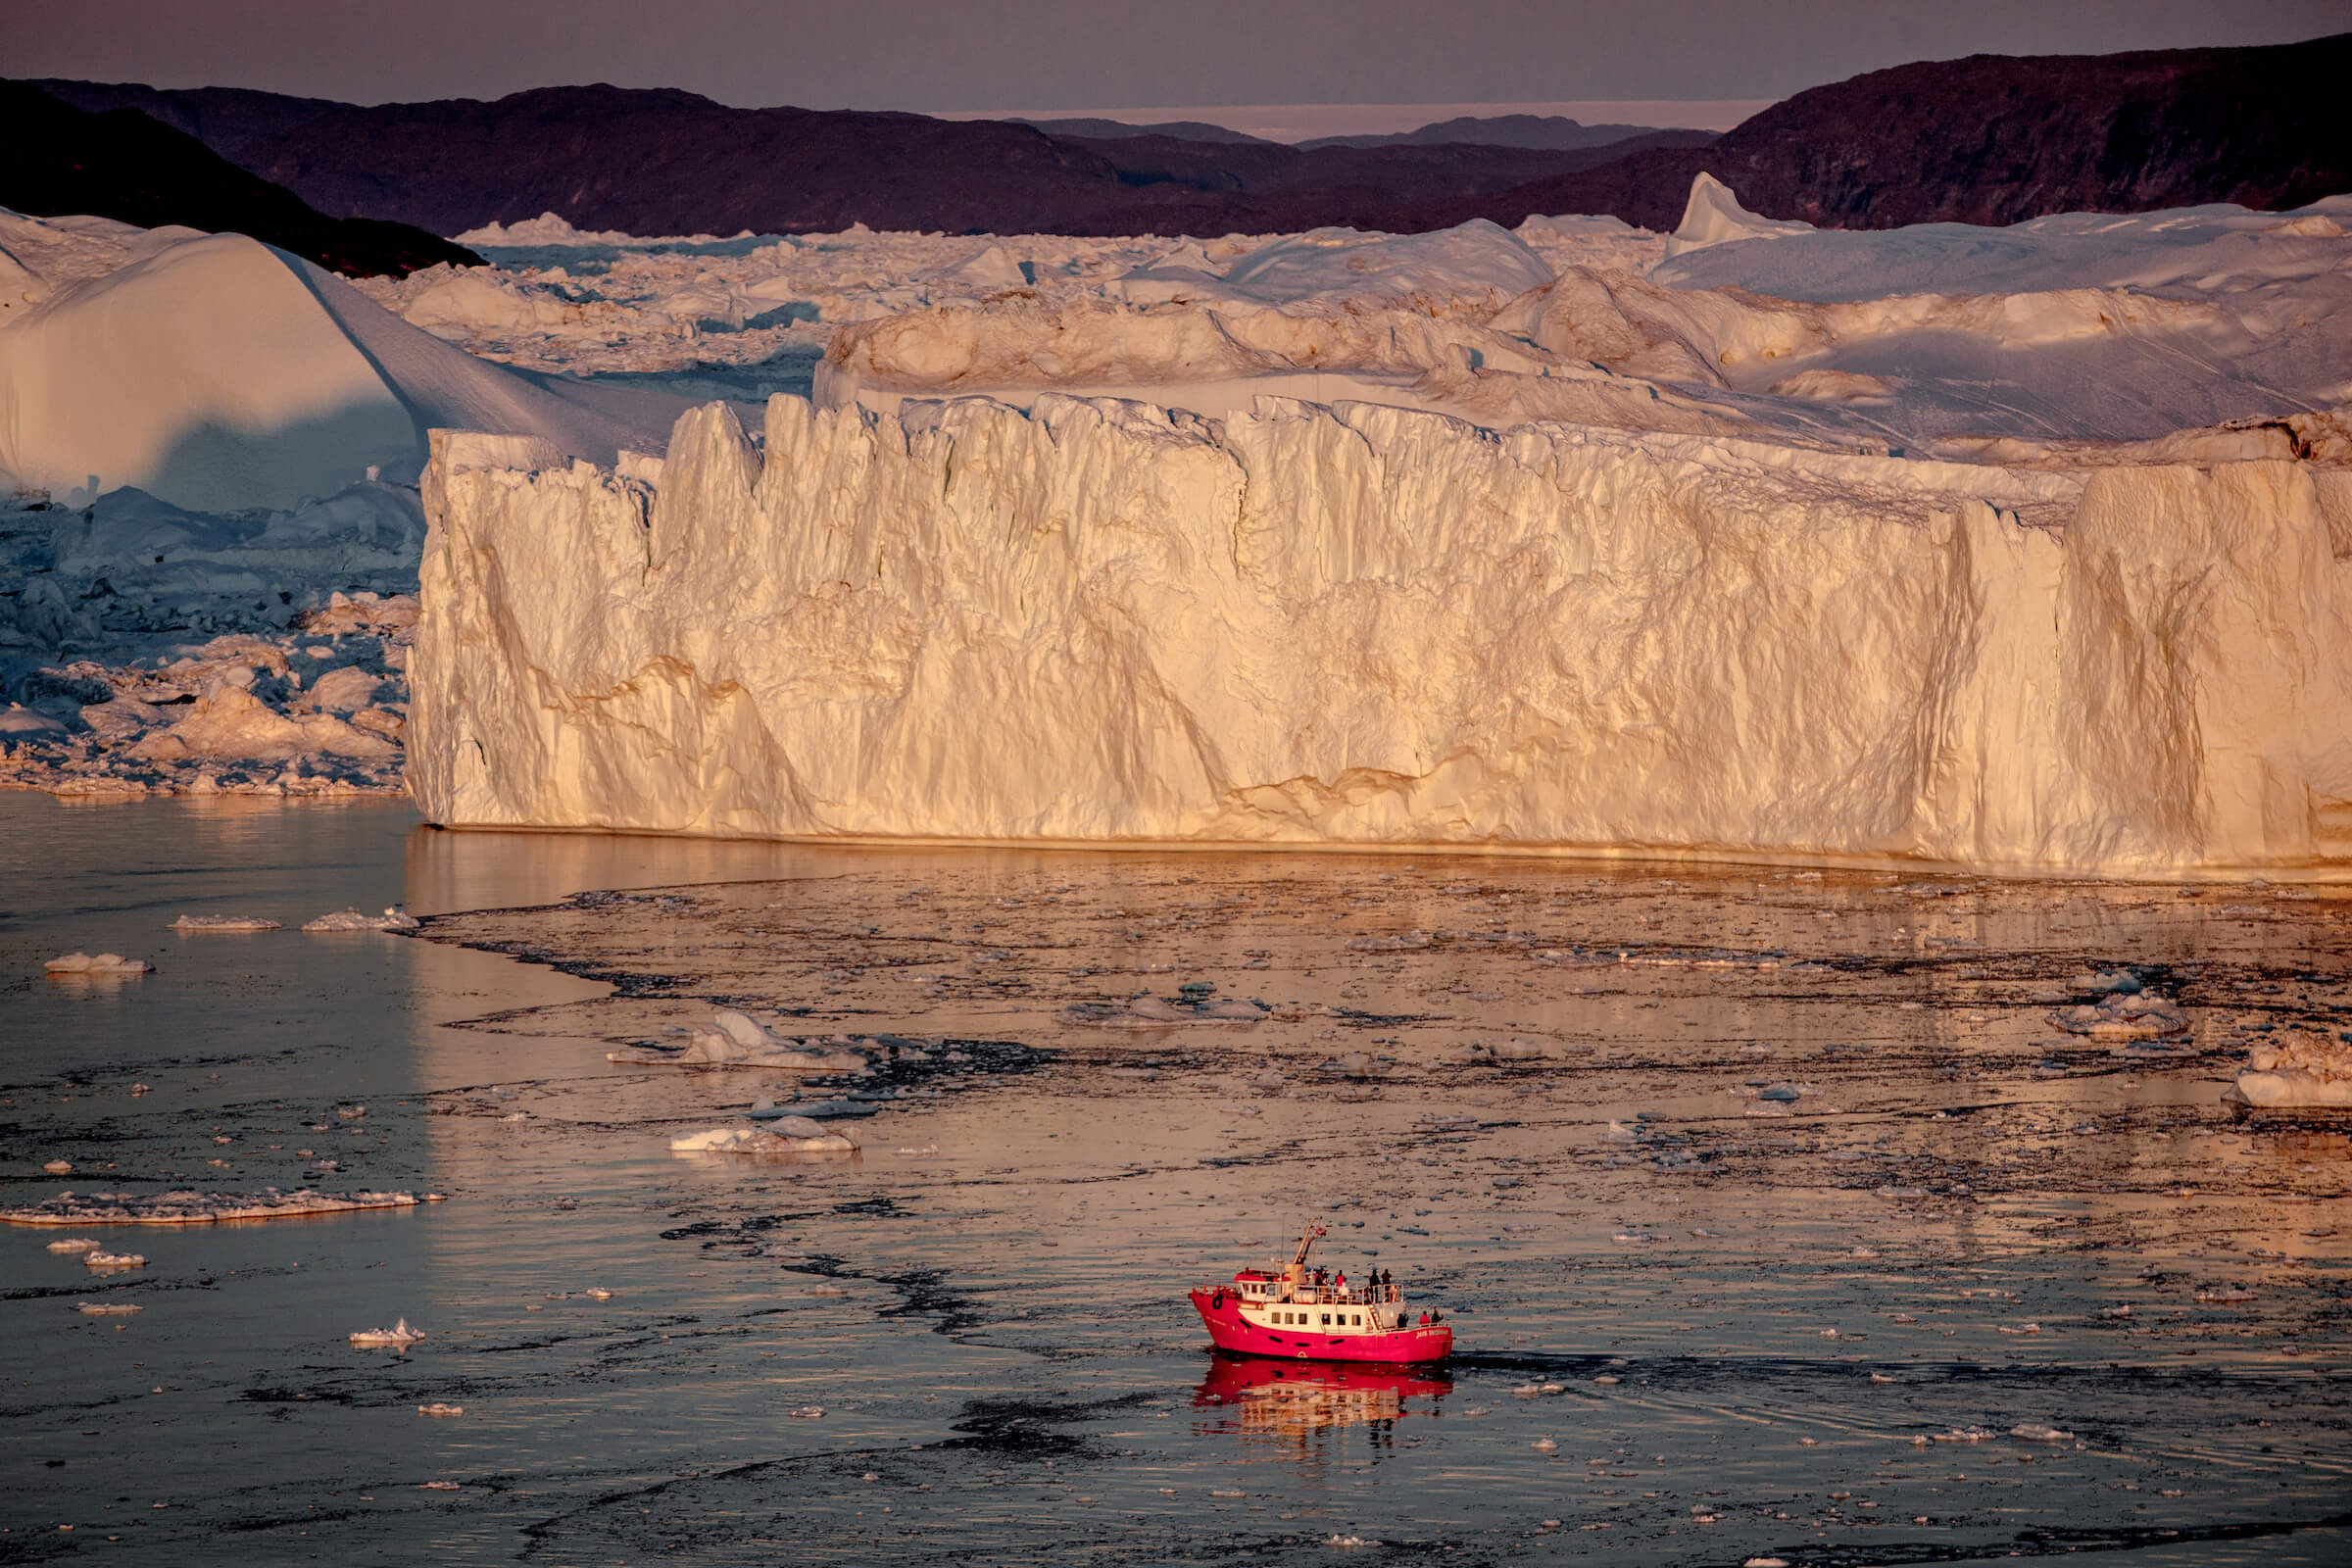 A passenger boat in the sunset near the icebergs of Ilulissat ice fjord in Greenland. By Mads Pihl